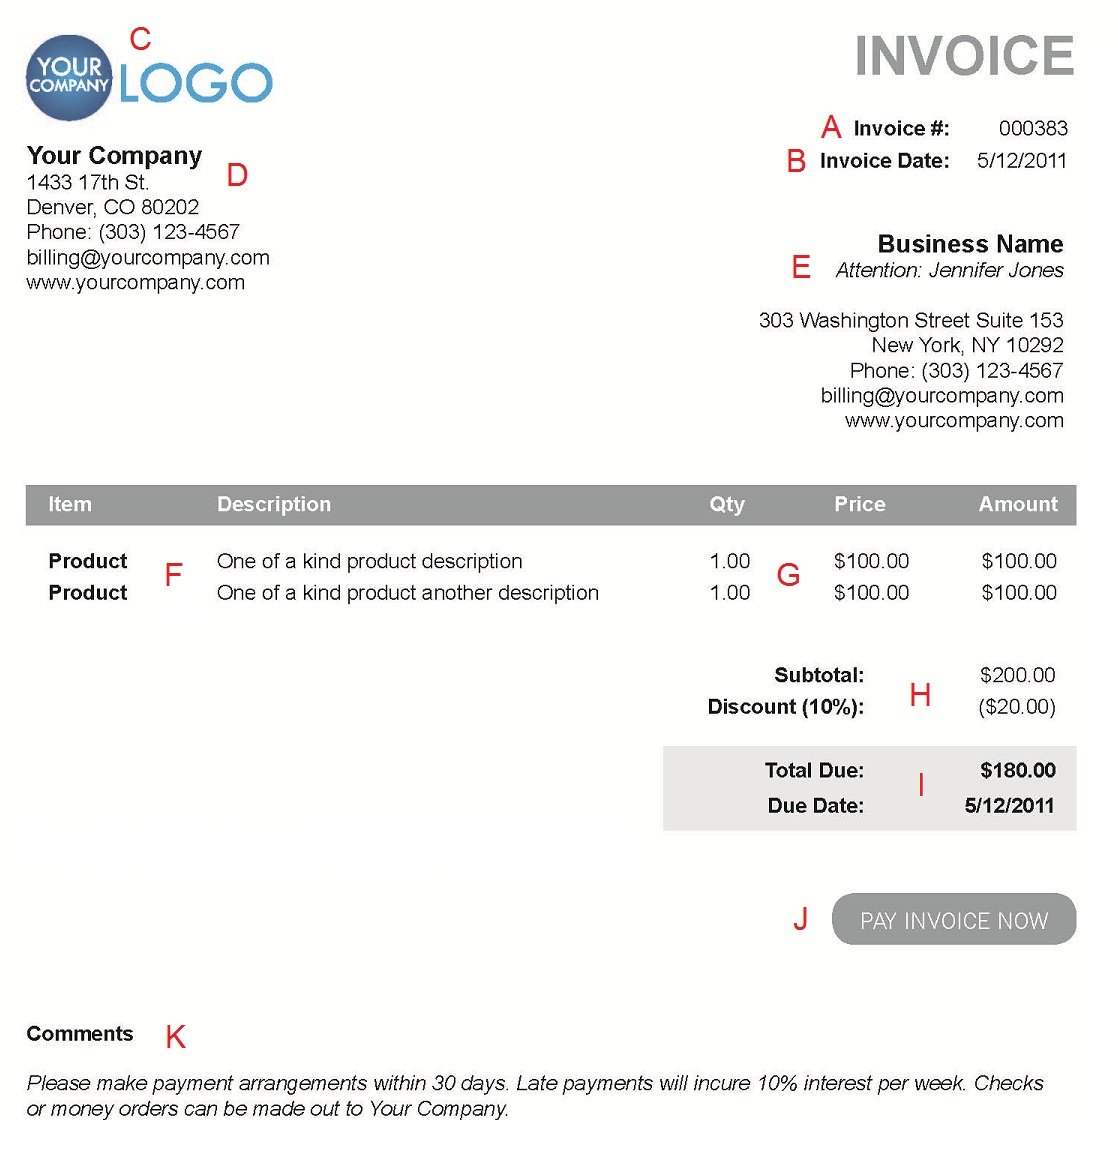 Pigbrotherus  Outstanding The  Different Sections Of An Electronic Payment Invoice With Gorgeous A  With Astonishing Sample Invoice Xls Also Export Invoices In Addition Business Invoice Sample And Free Uk Invoice Template As Well As Builder Invoice Template Additionally Export Invoice Sample From Paysimplecom With Pigbrotherus  Gorgeous The  Different Sections Of An Electronic Payment Invoice With Astonishing A  And Outstanding Sample Invoice Xls Also Export Invoices In Addition Business Invoice Sample From Paysimplecom